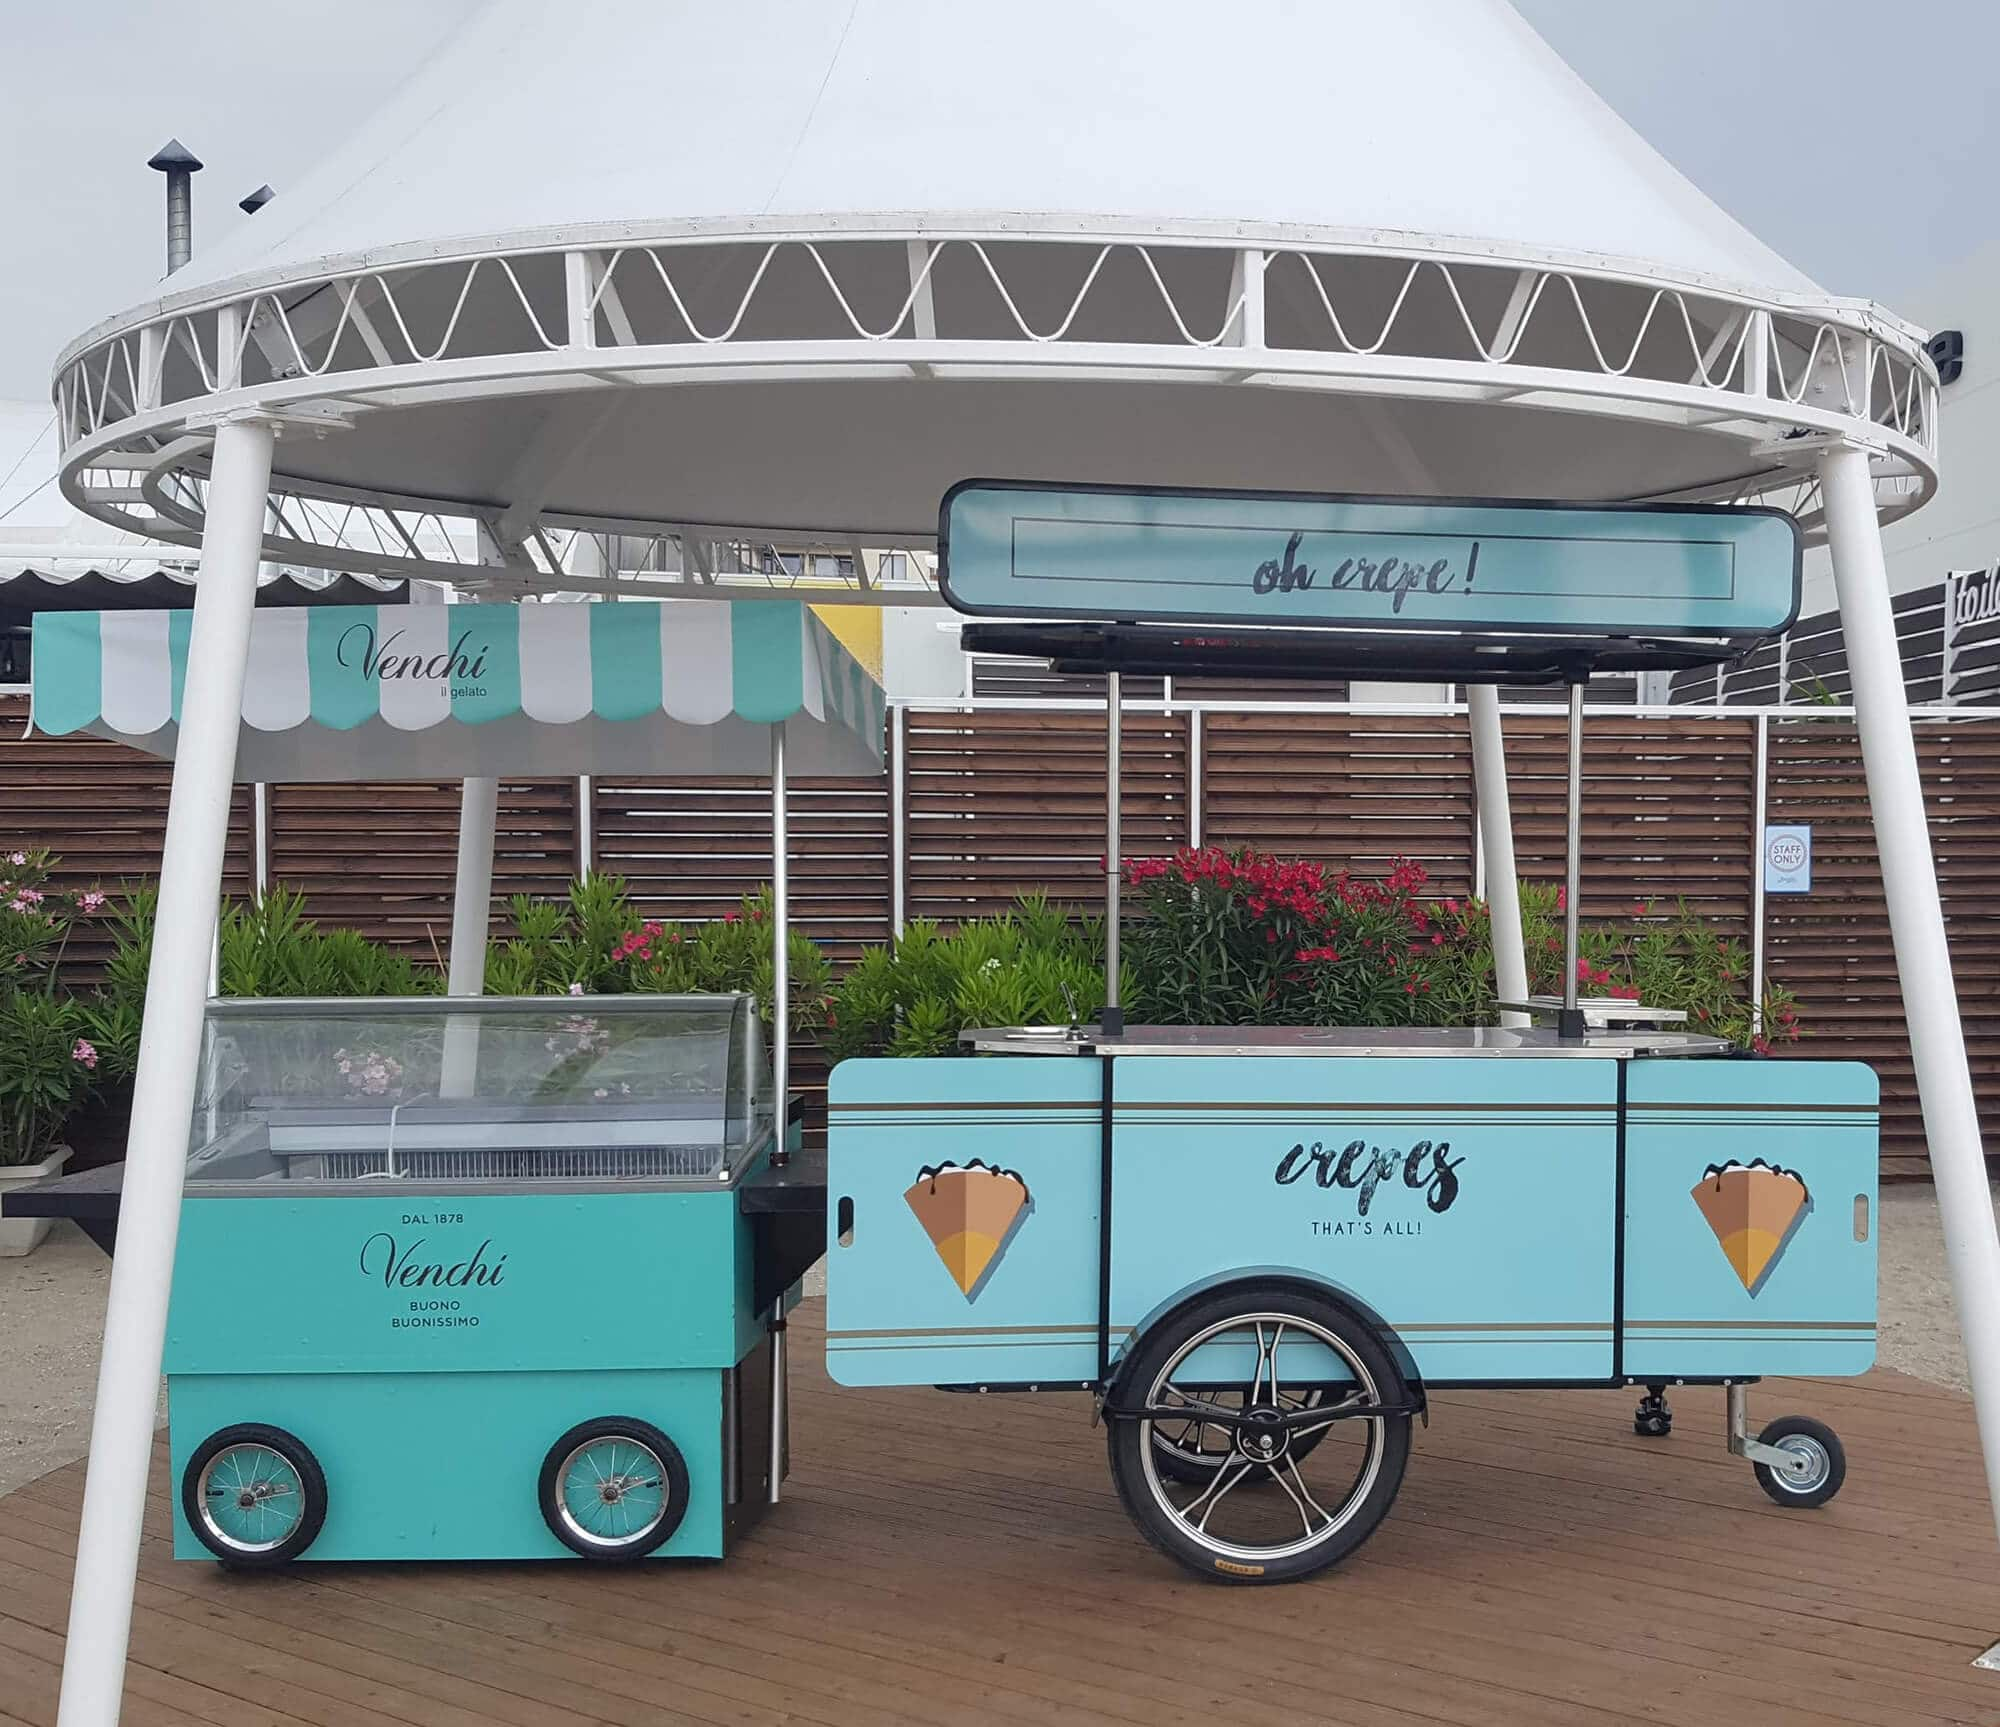 Fratelli crepe cart made by BizzOnWheels